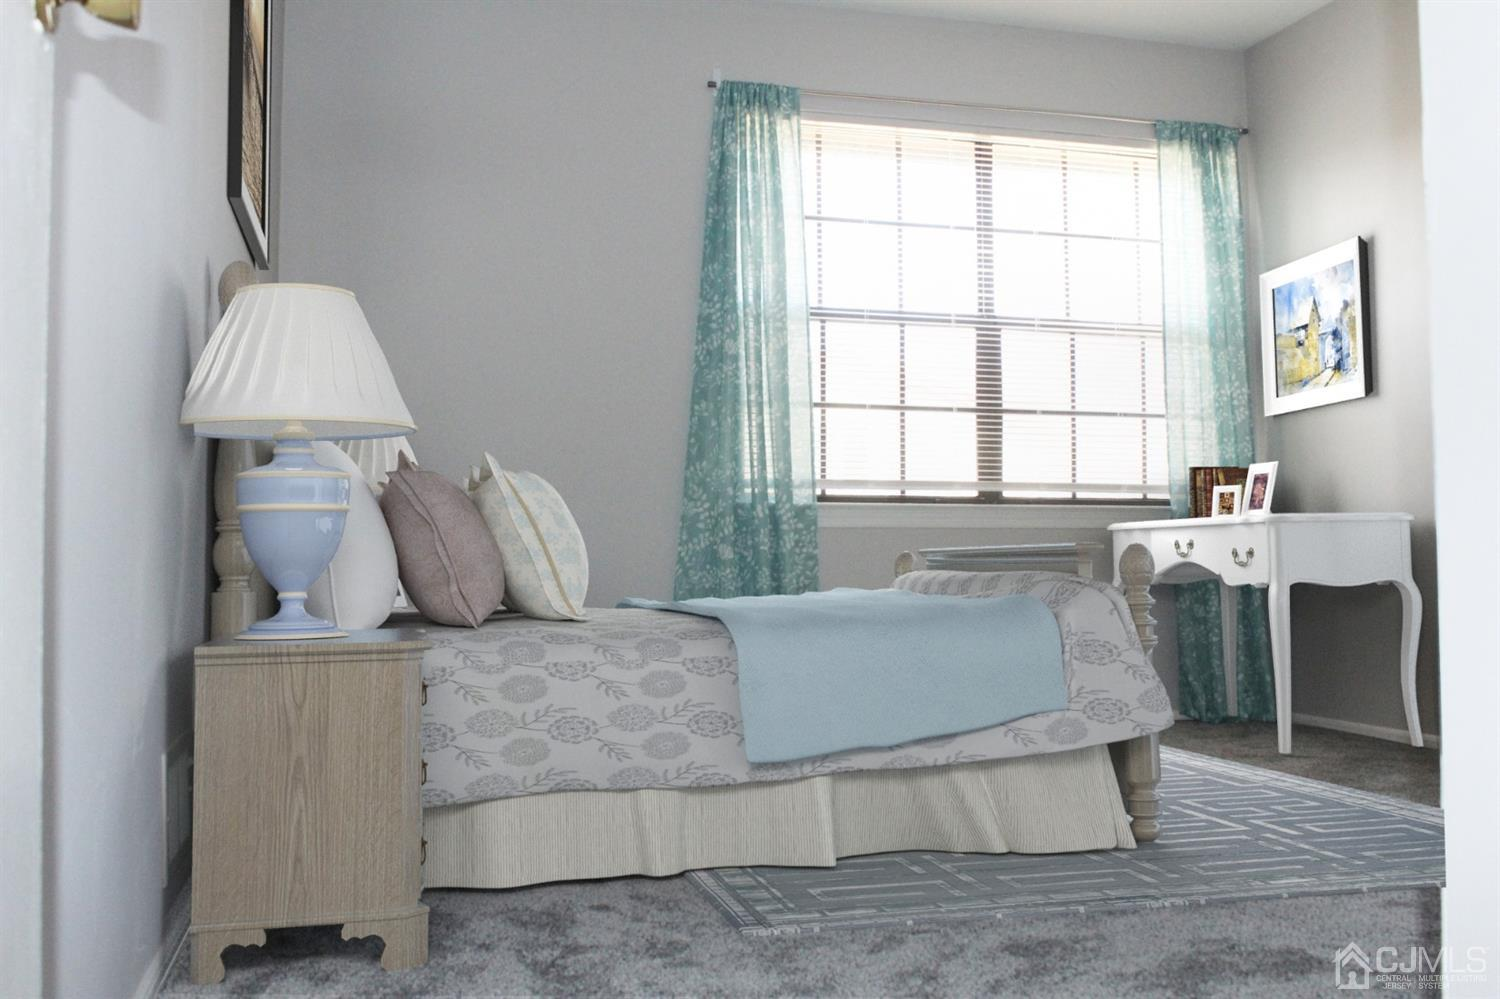 VIRTUAL STAGED WITH FURNITURE IN 2ND BEDROOM.